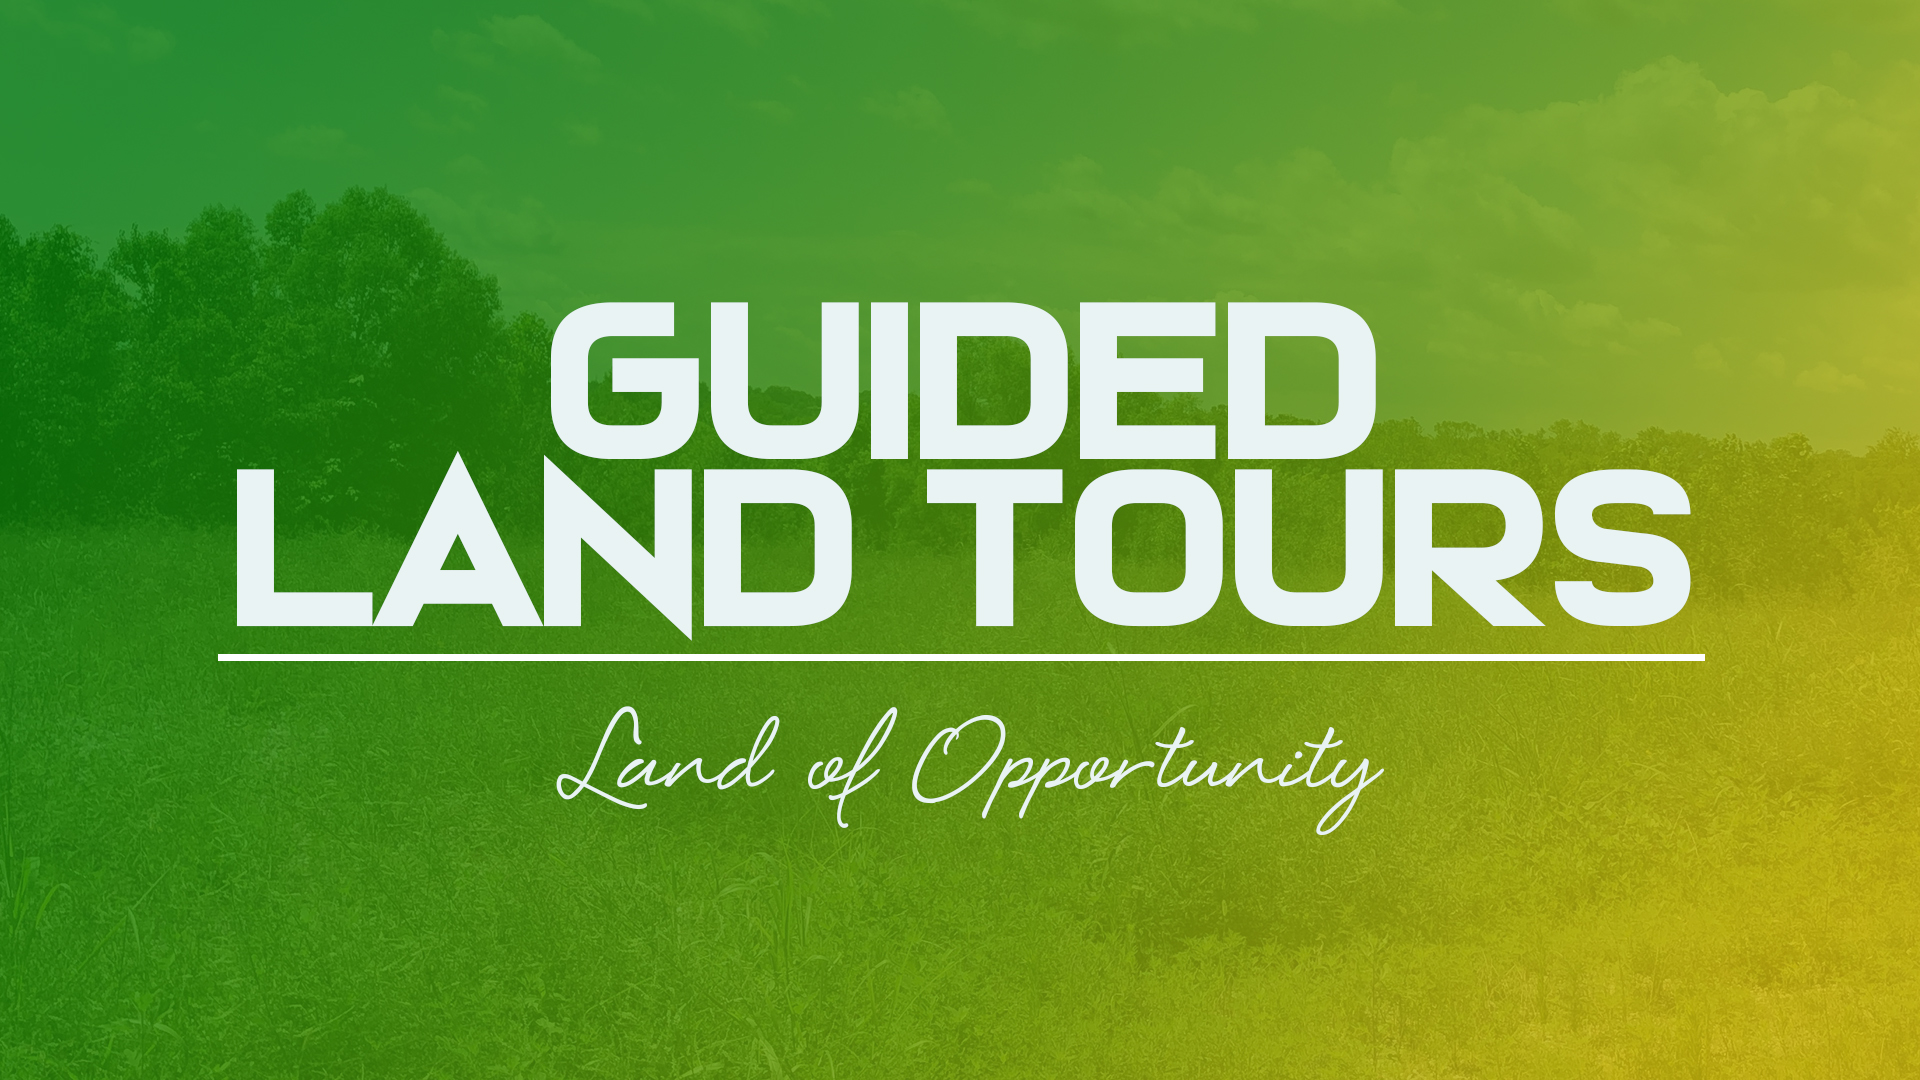 guided land tours image